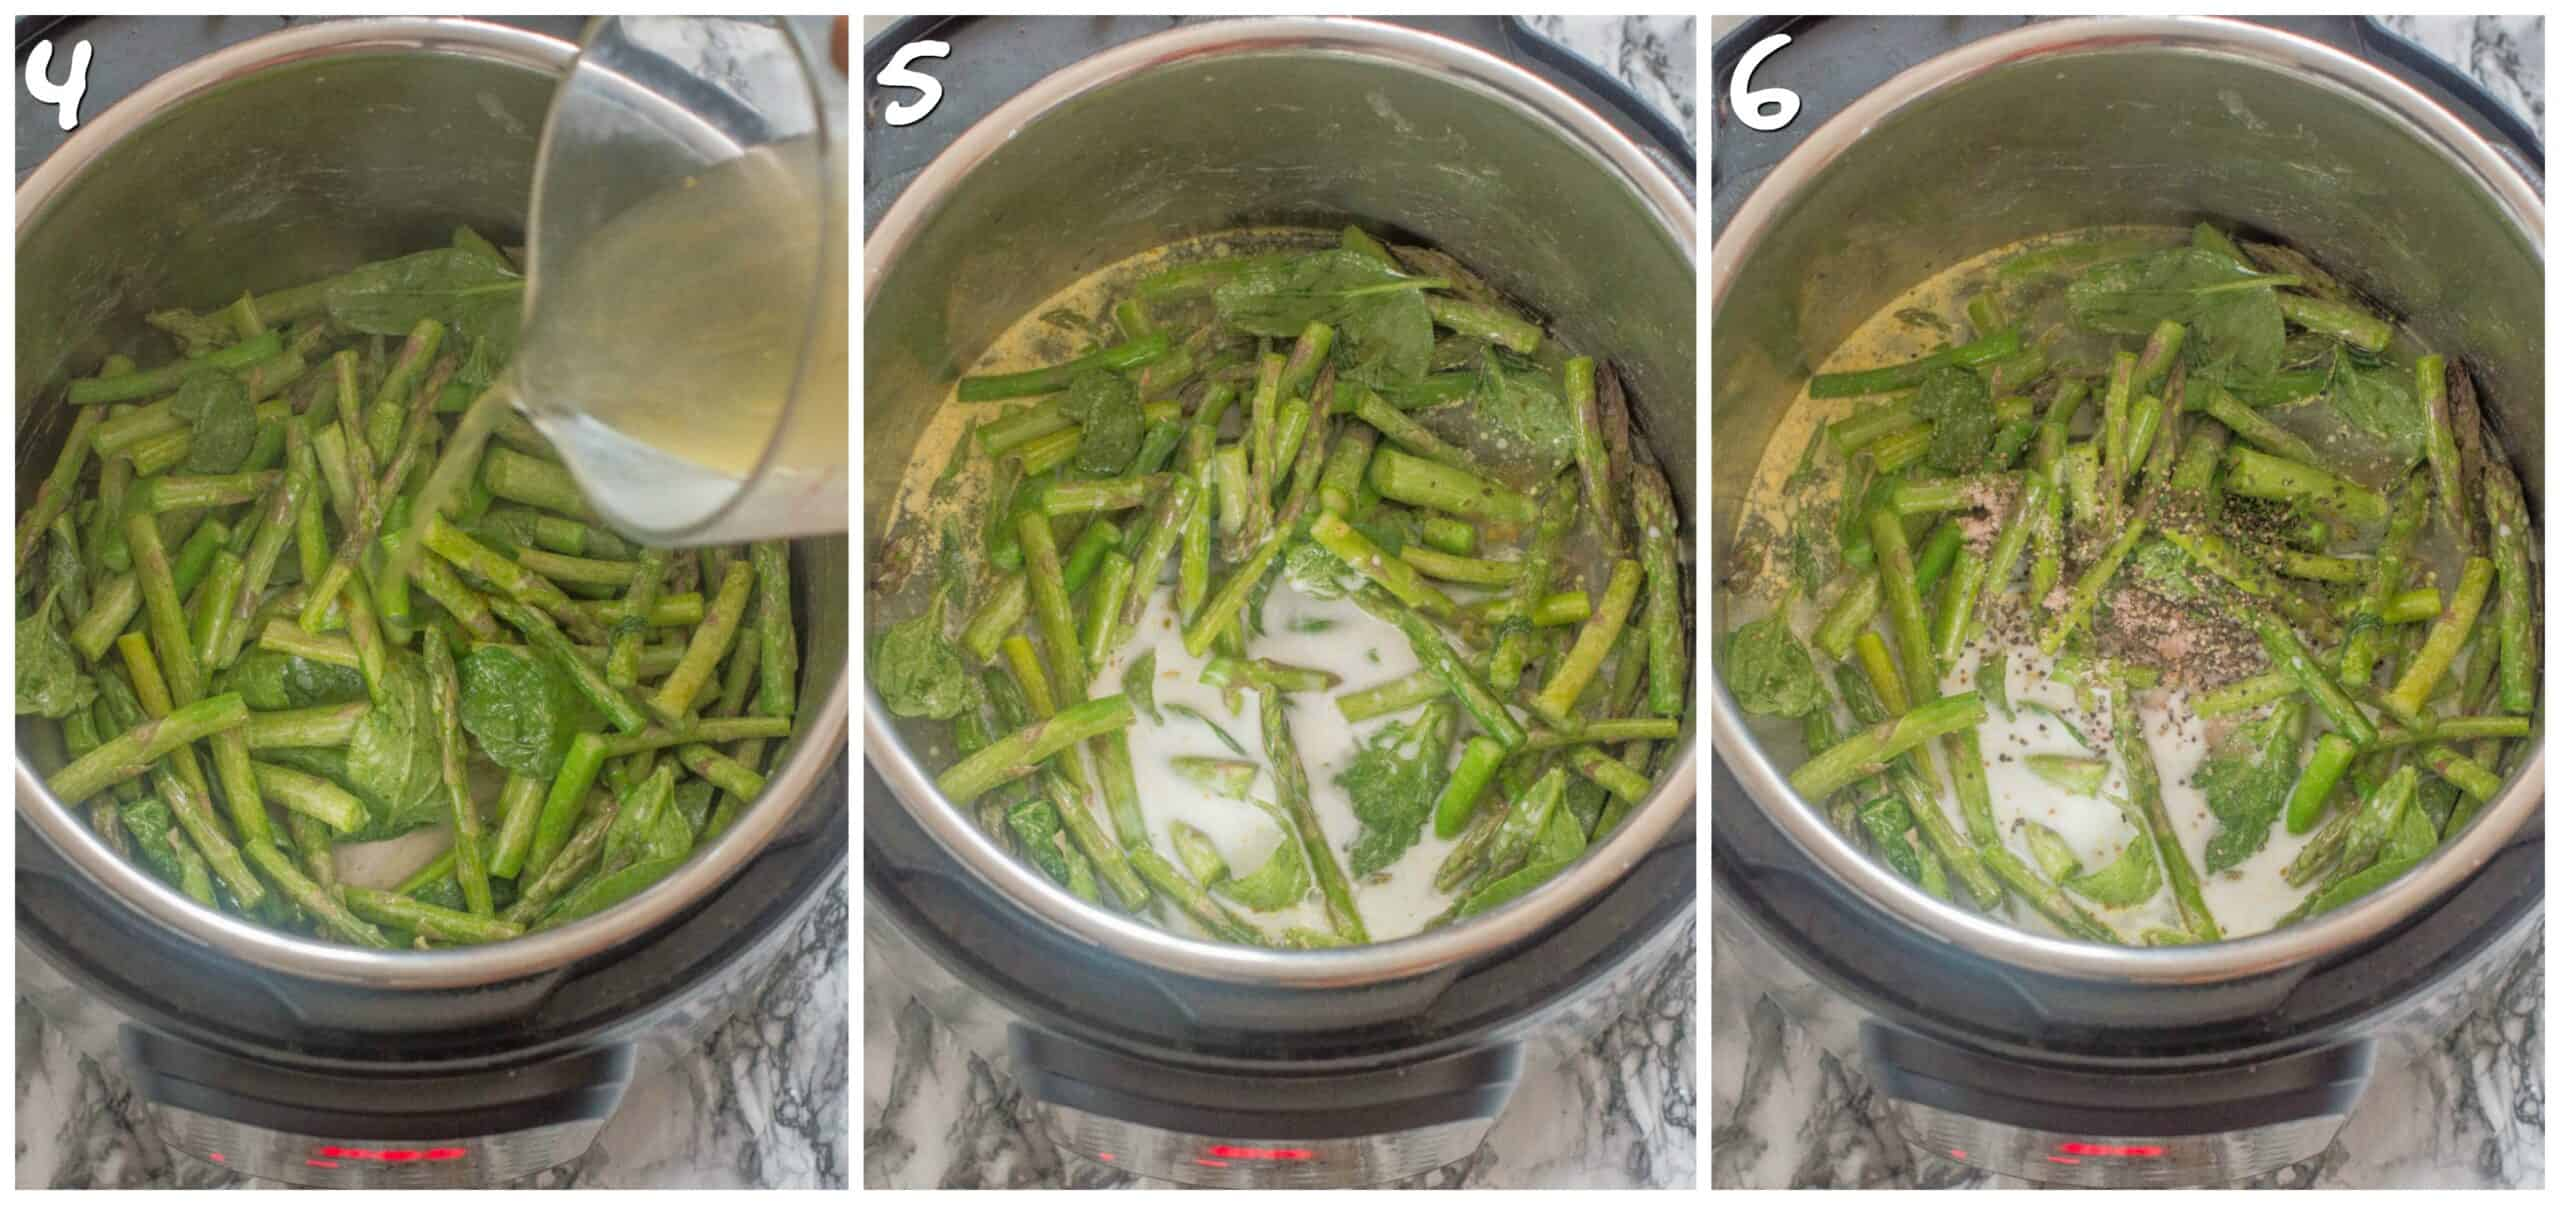 steps 4-6 adding stock, milk and seasoning